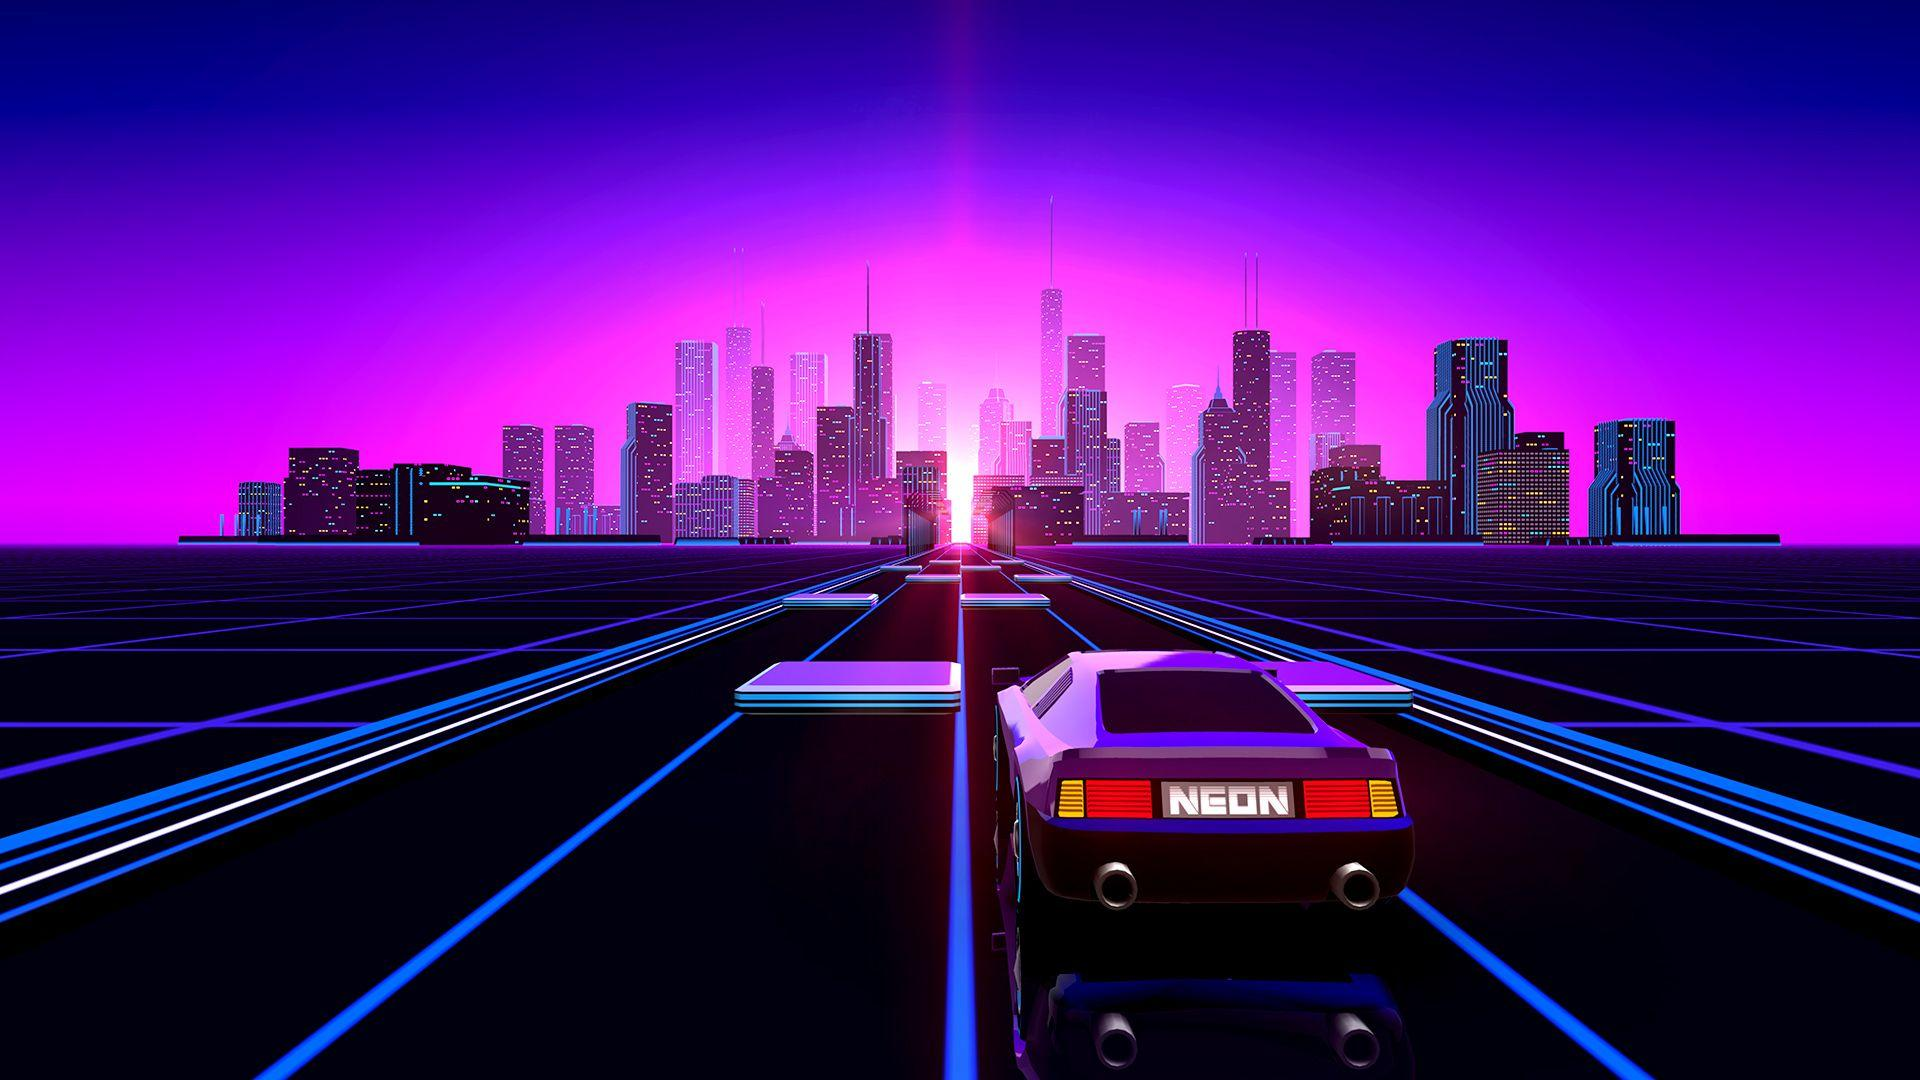 Wallpaper Synthwave